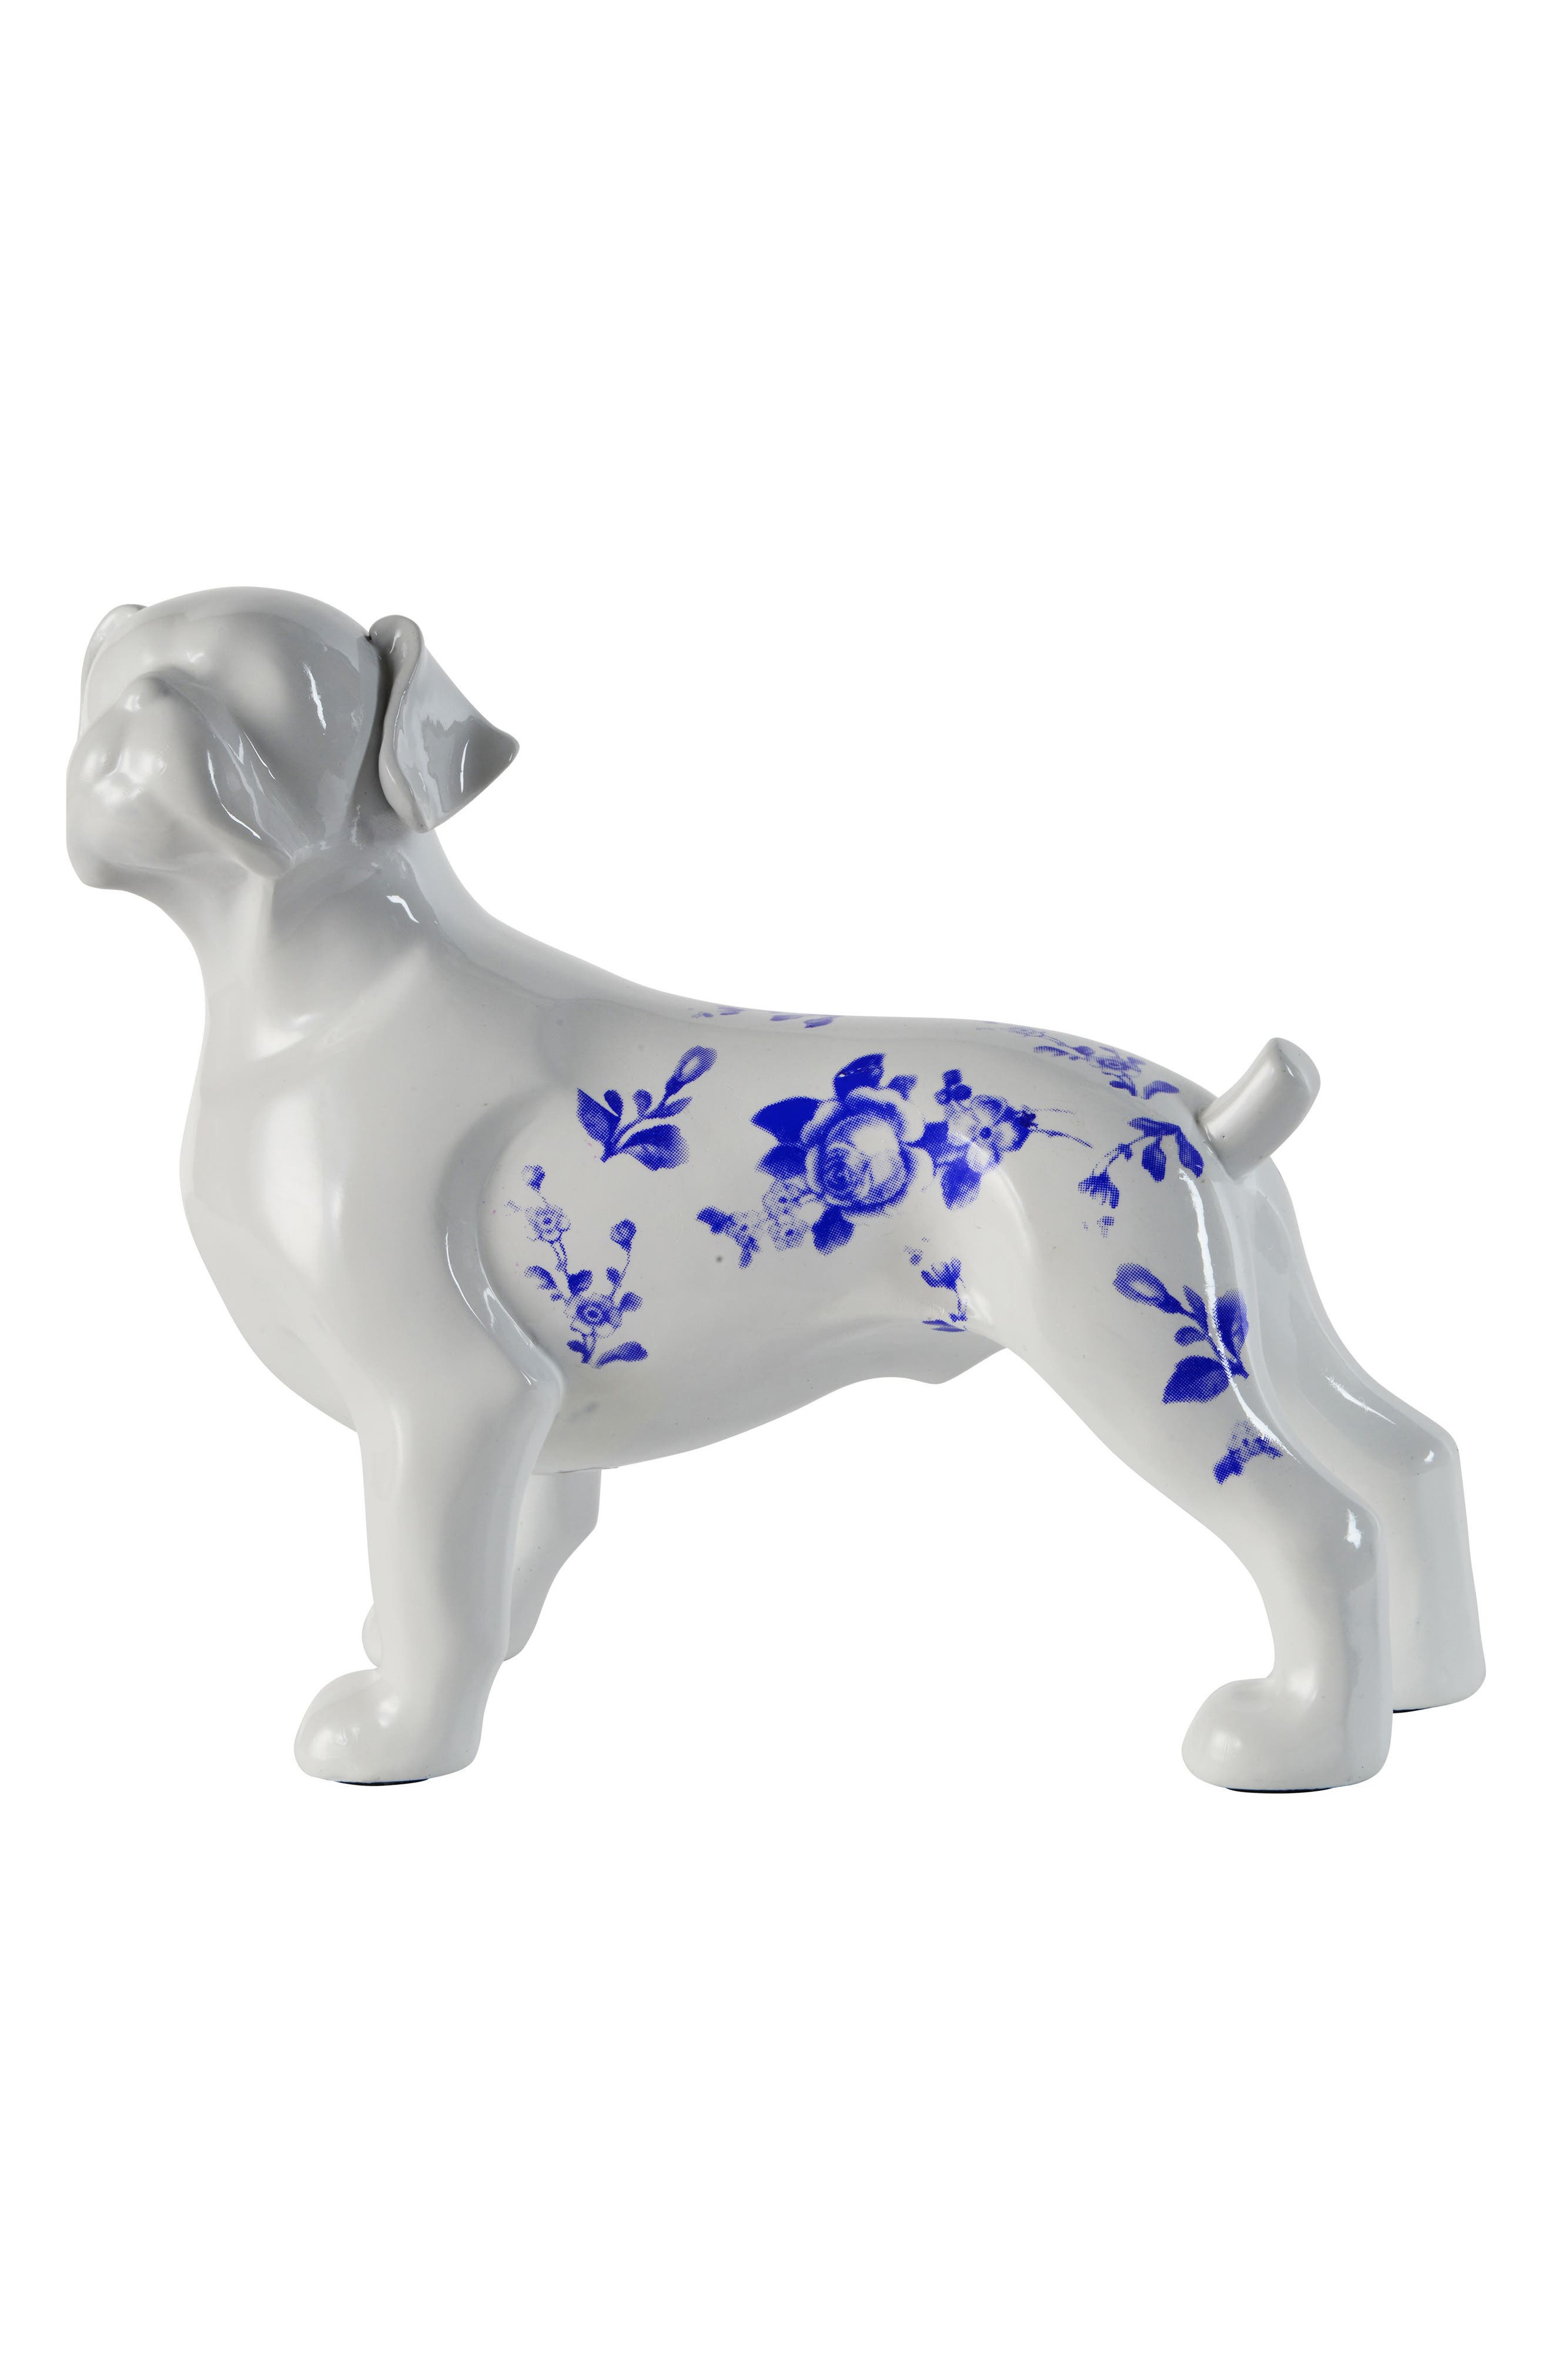 French Dog Statue,                             Main thumbnail 1, color,                             White And Blue